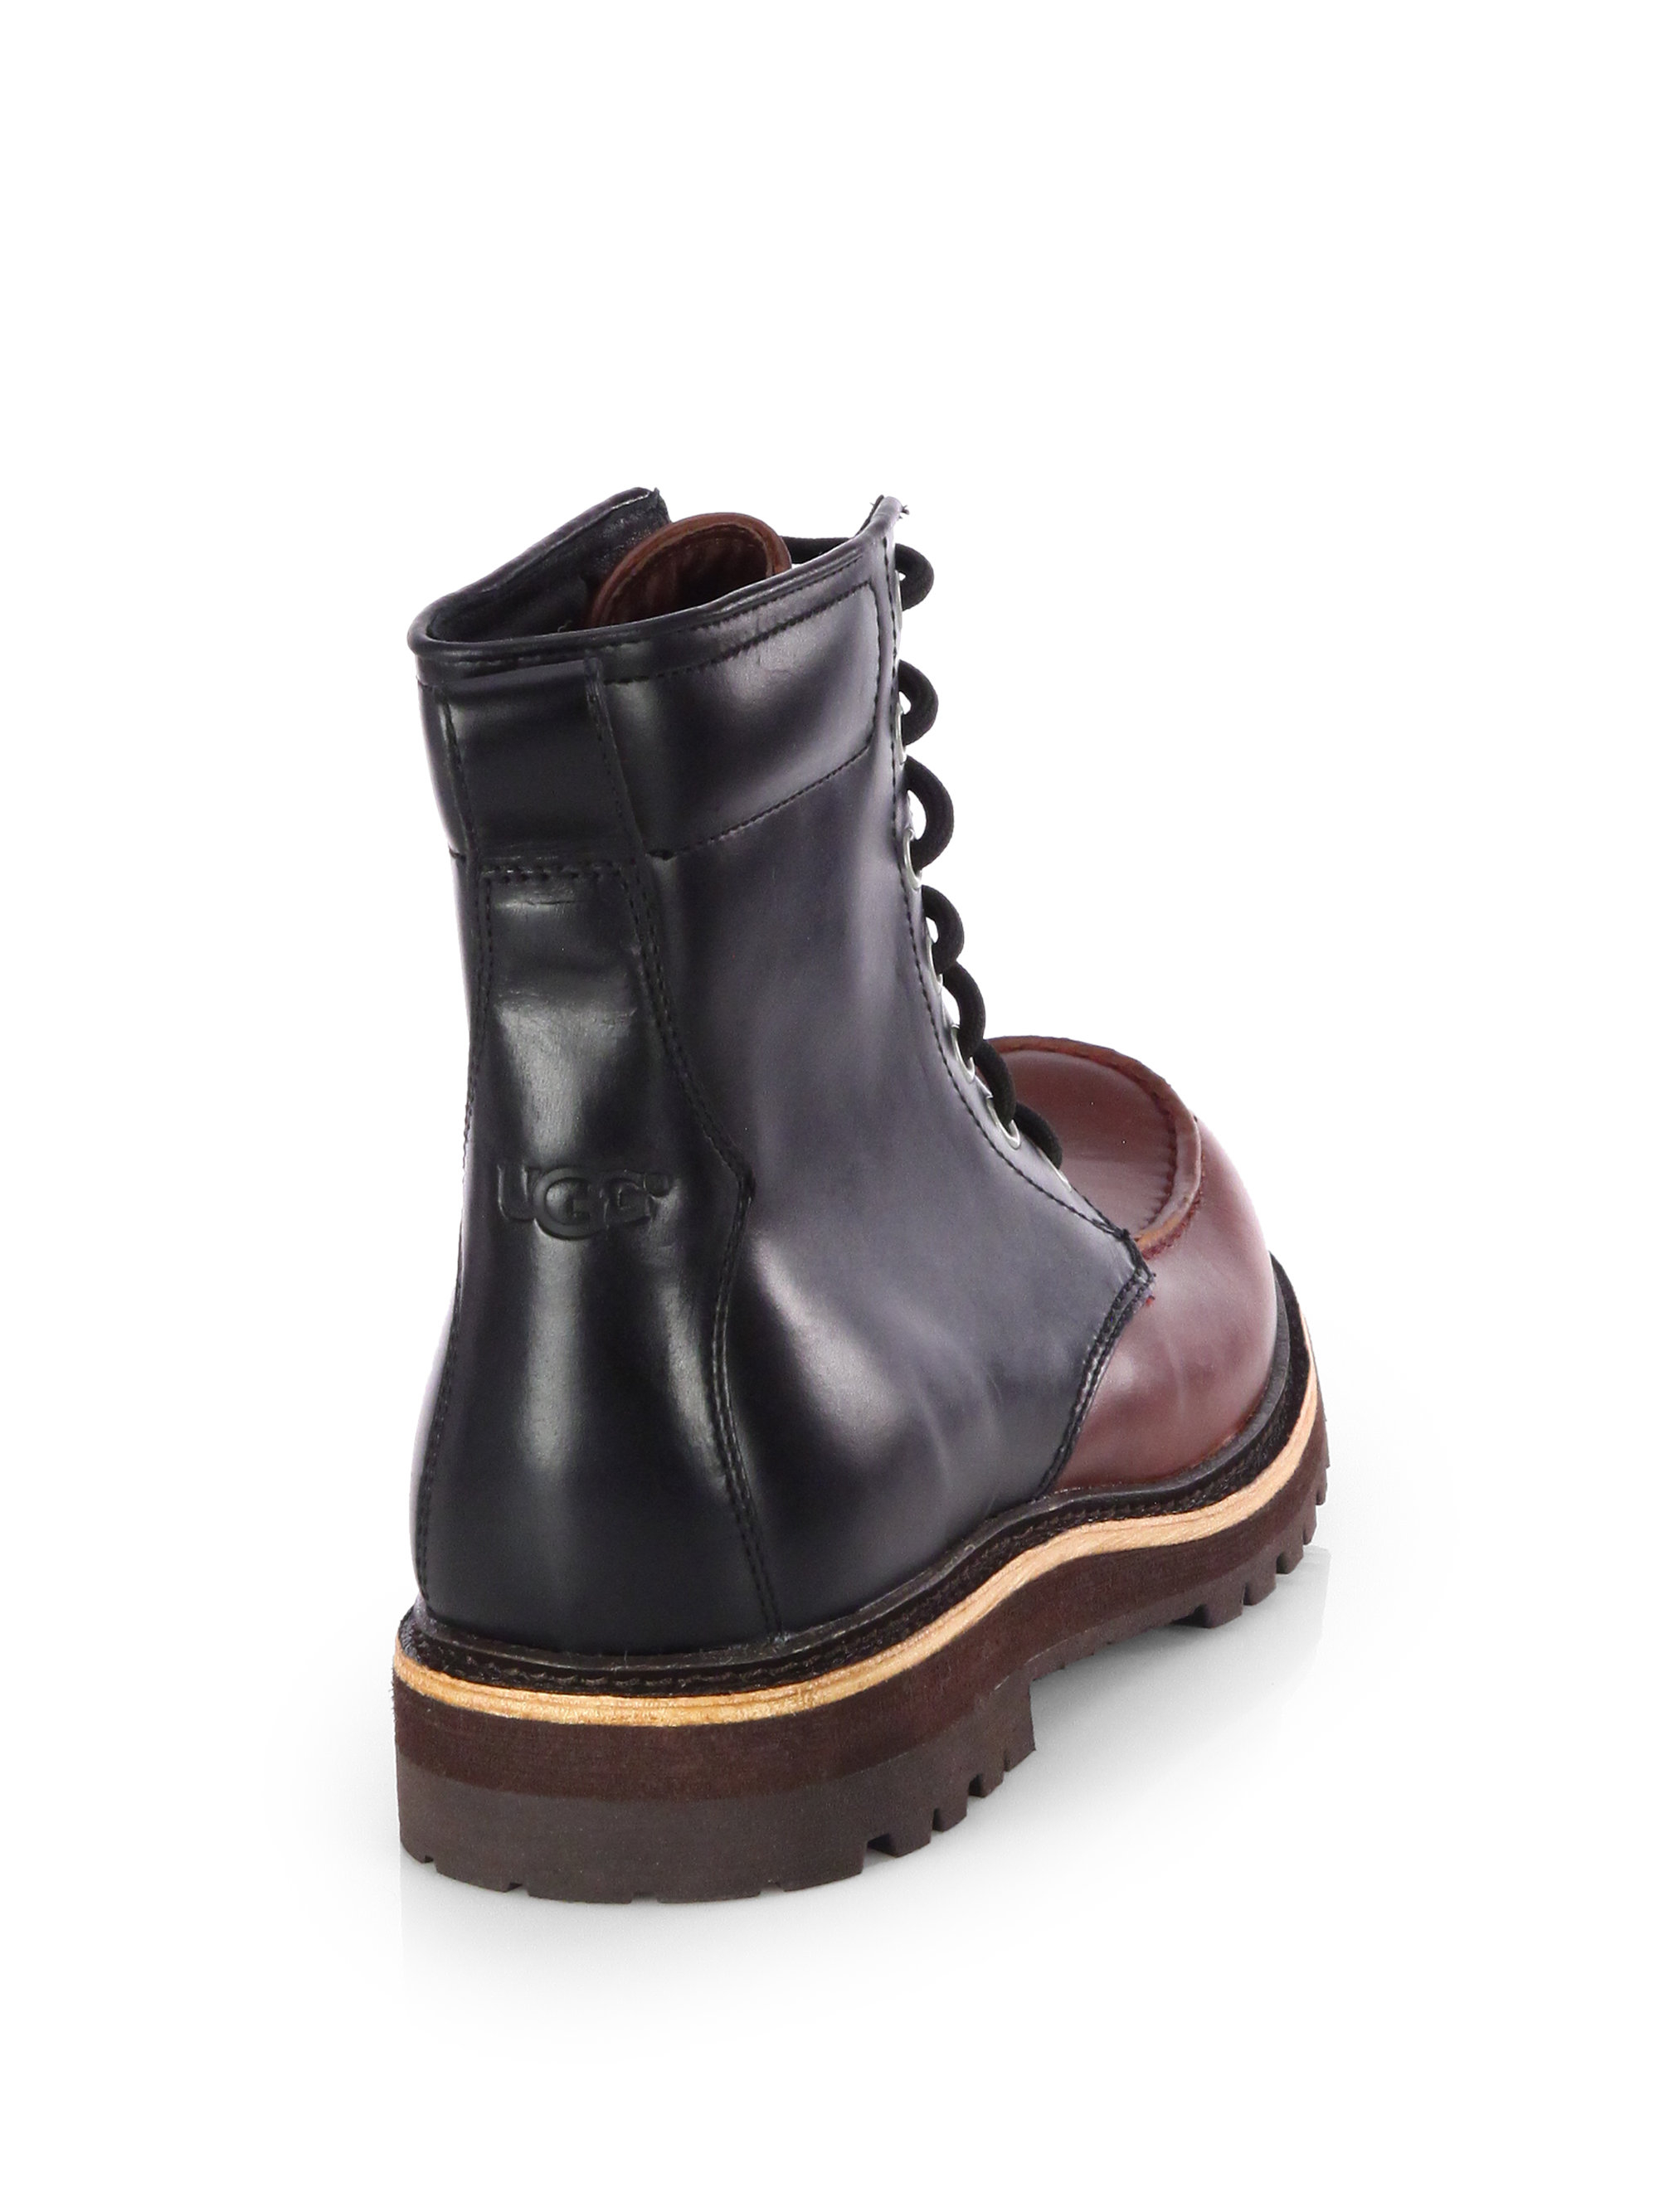 Lyst Ugg Noxon Waterproof Boots In Brown For Men